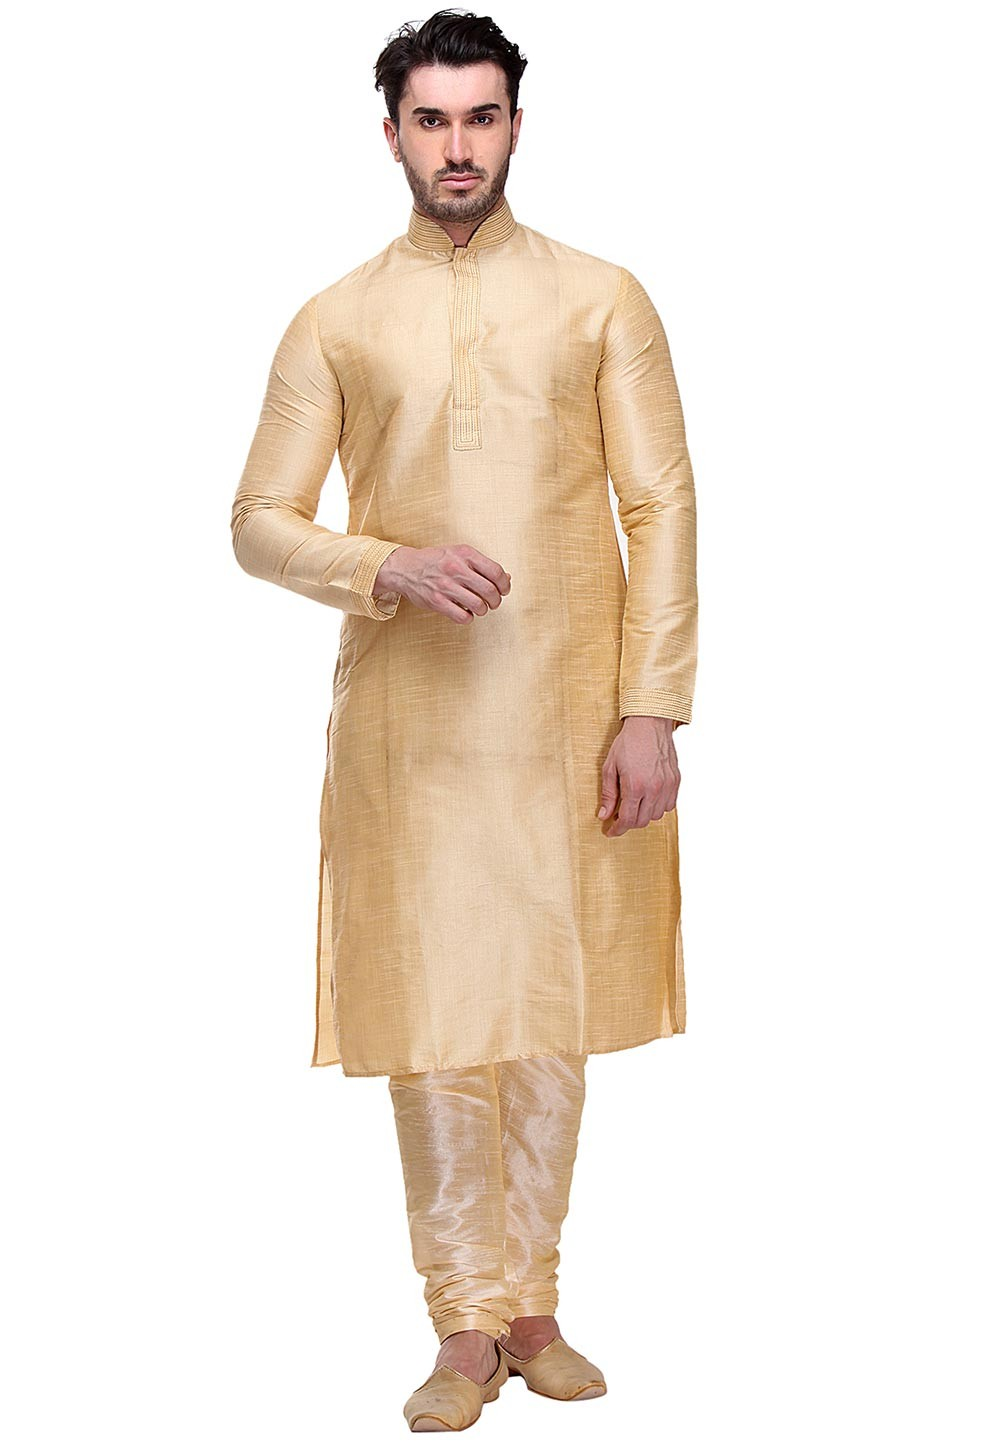 Golden Color Dupion Silk Kurta Pajama.